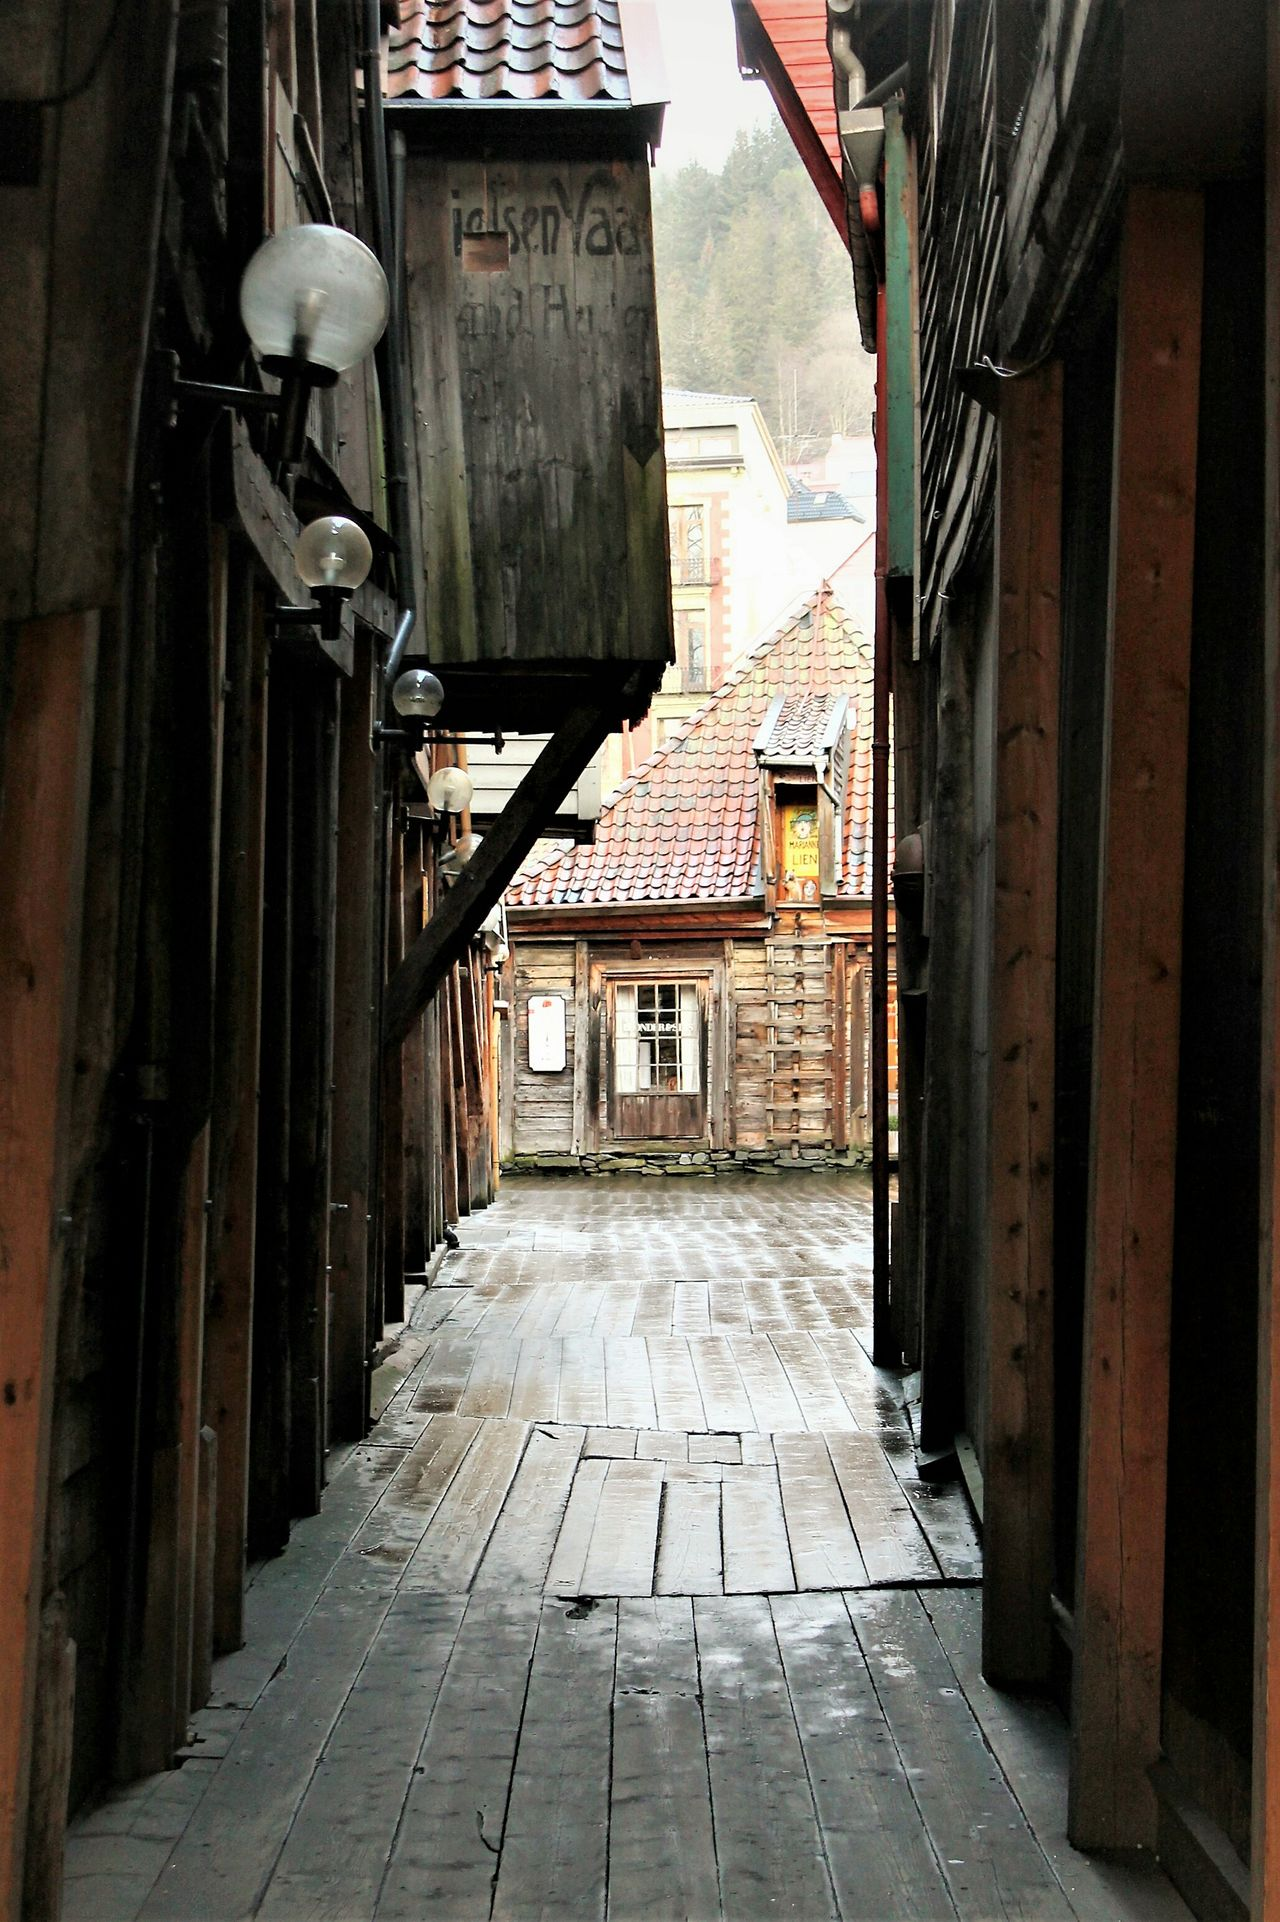 Bergen Oldtown Wooden Structure Harbourside Built Structure Architecture Building Exterior The Way Forward Steps NorwayTourism Travel Destinations Visitnorway Cityscape Norway Eyem Gallery City No People Day City Outdoors